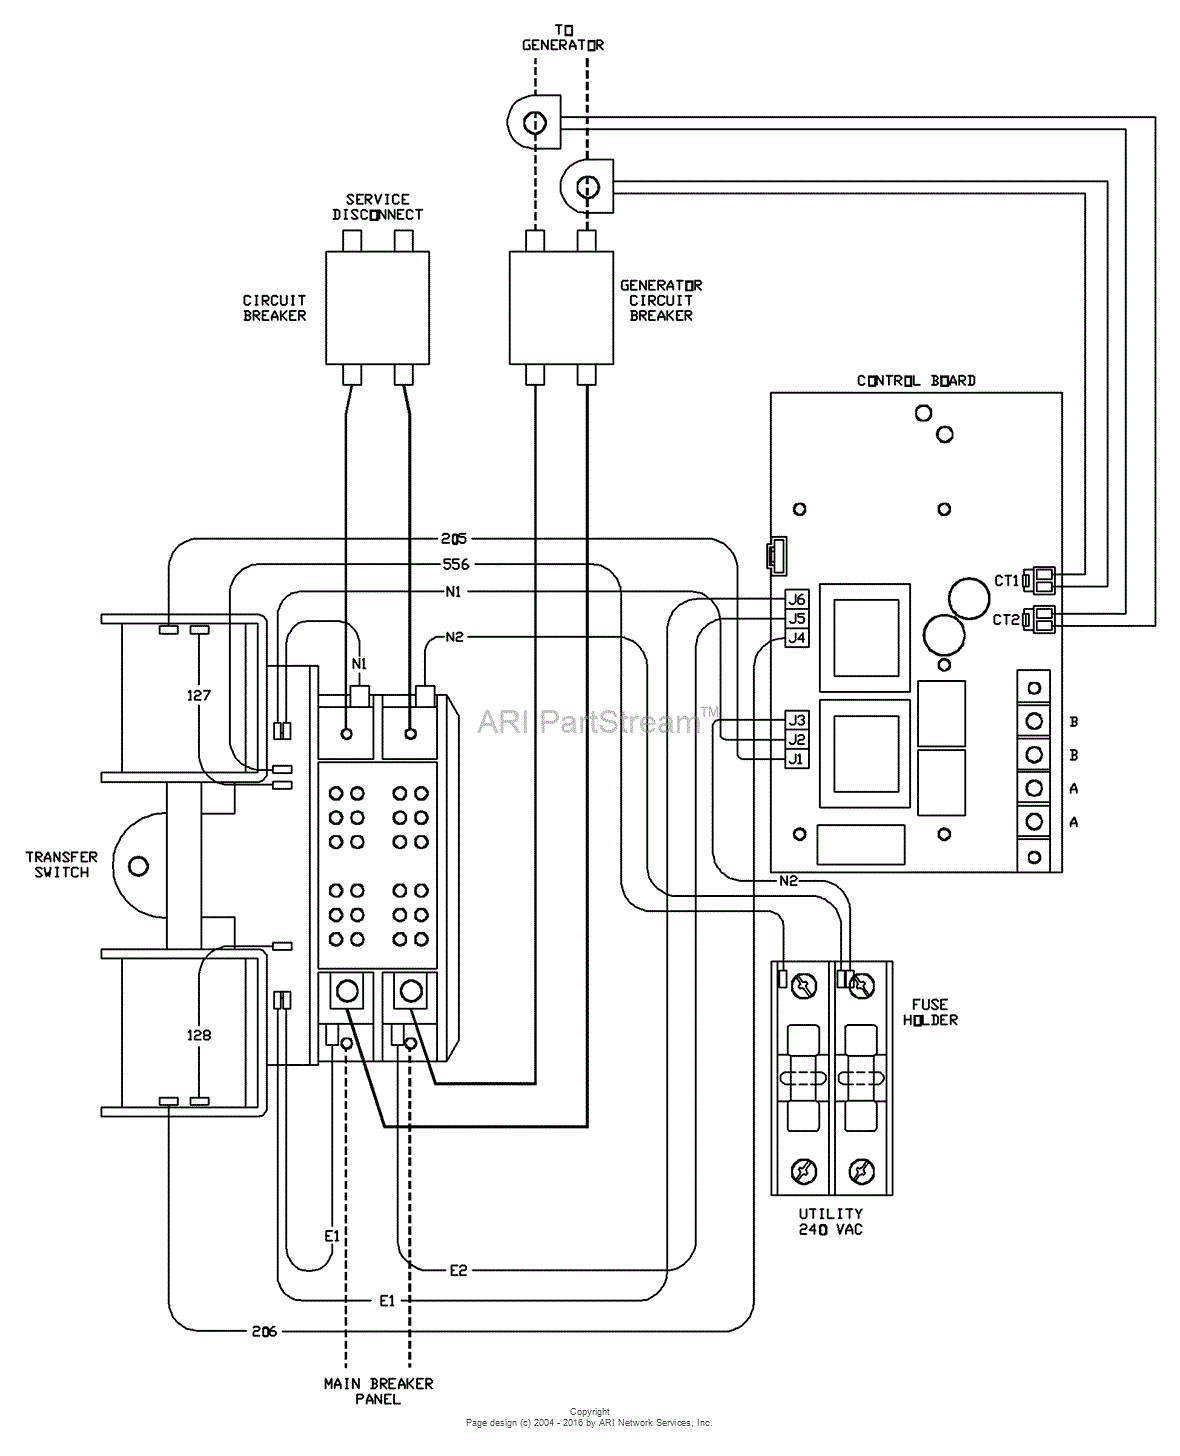 briggs and stratton power products 071046 00 200 amp automatic 200 automatic transfer switch wiring diagram source generator manual